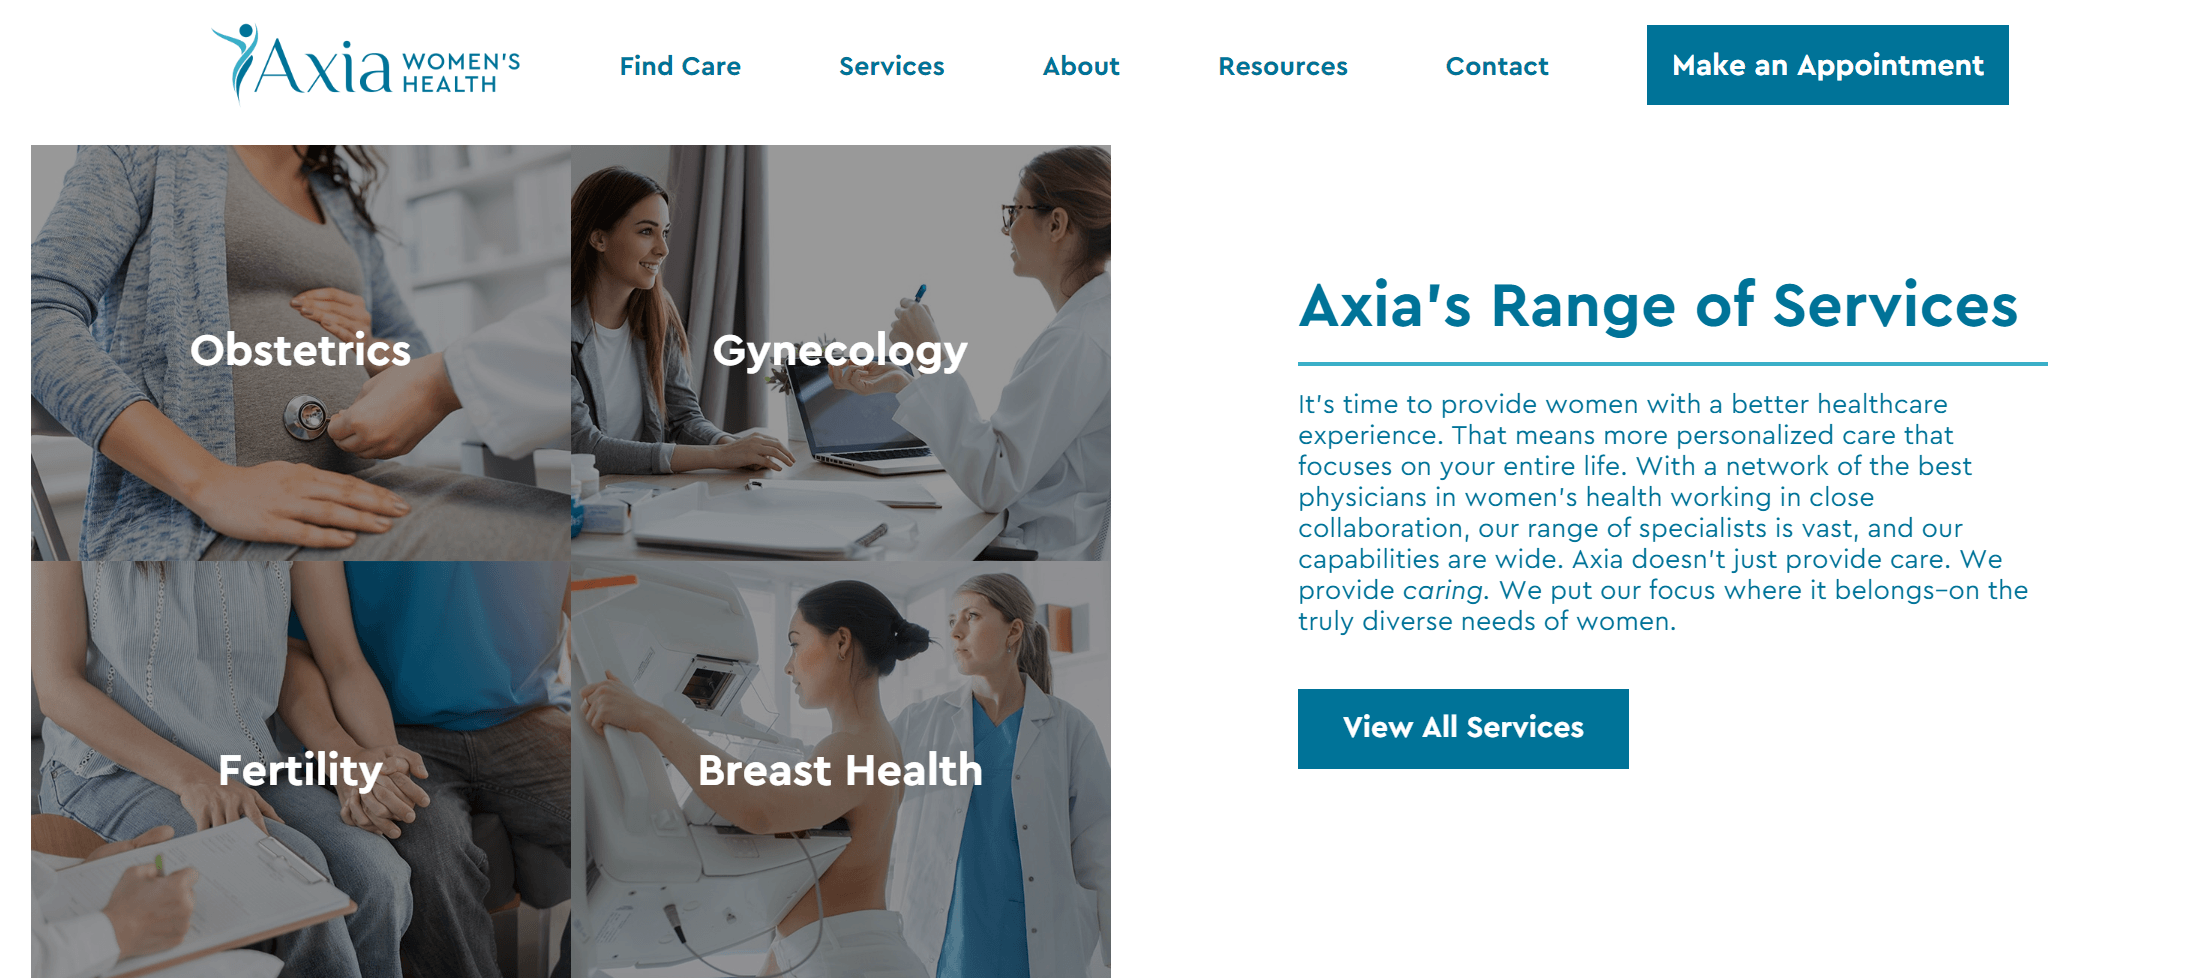 Prenatal App Babyscripts Announces Partnership with Axia Women's Health